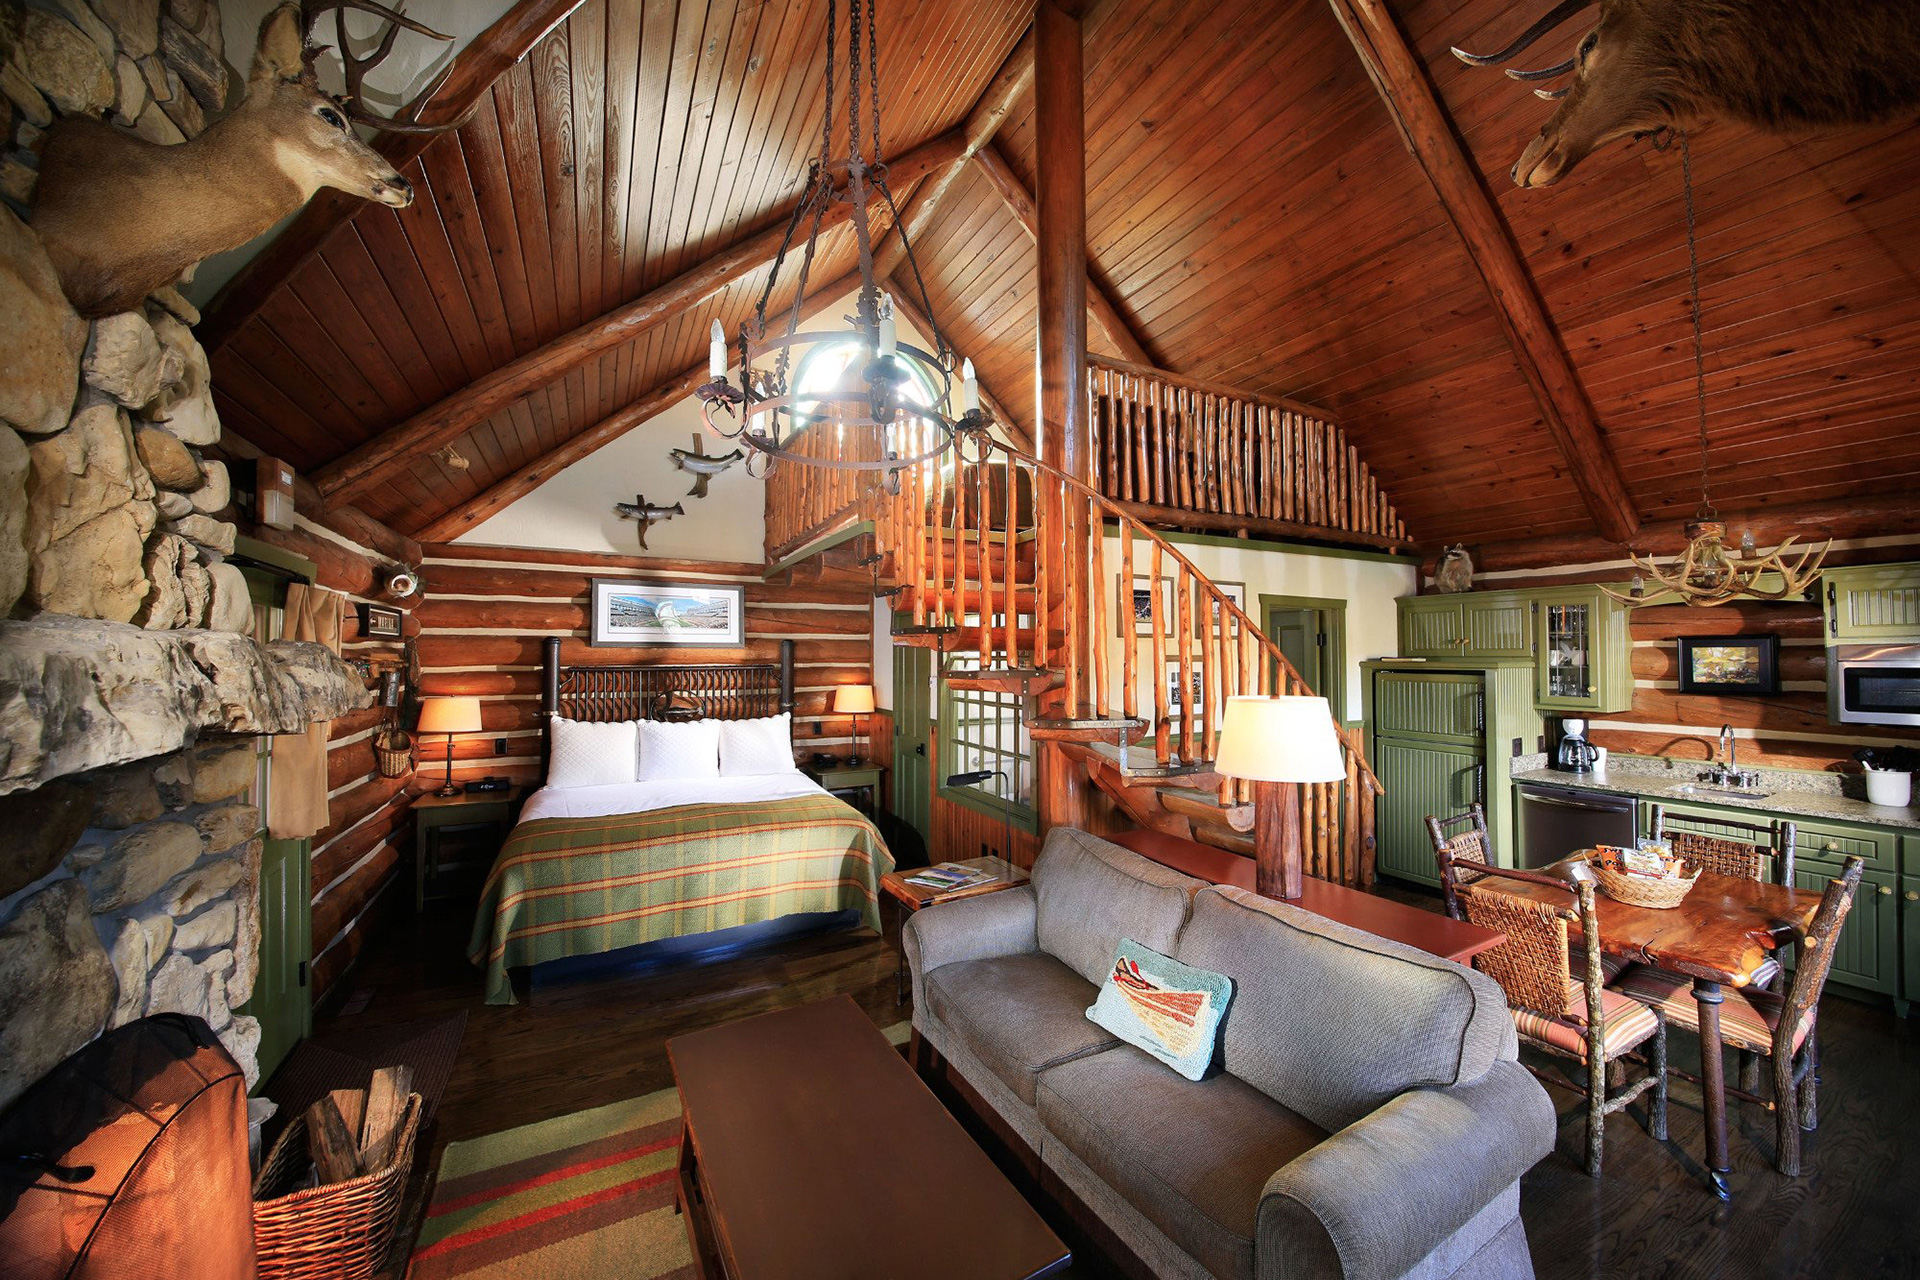 Private one bedroom with loft log cabin interior; Courtesy of Big Cedar Lodge